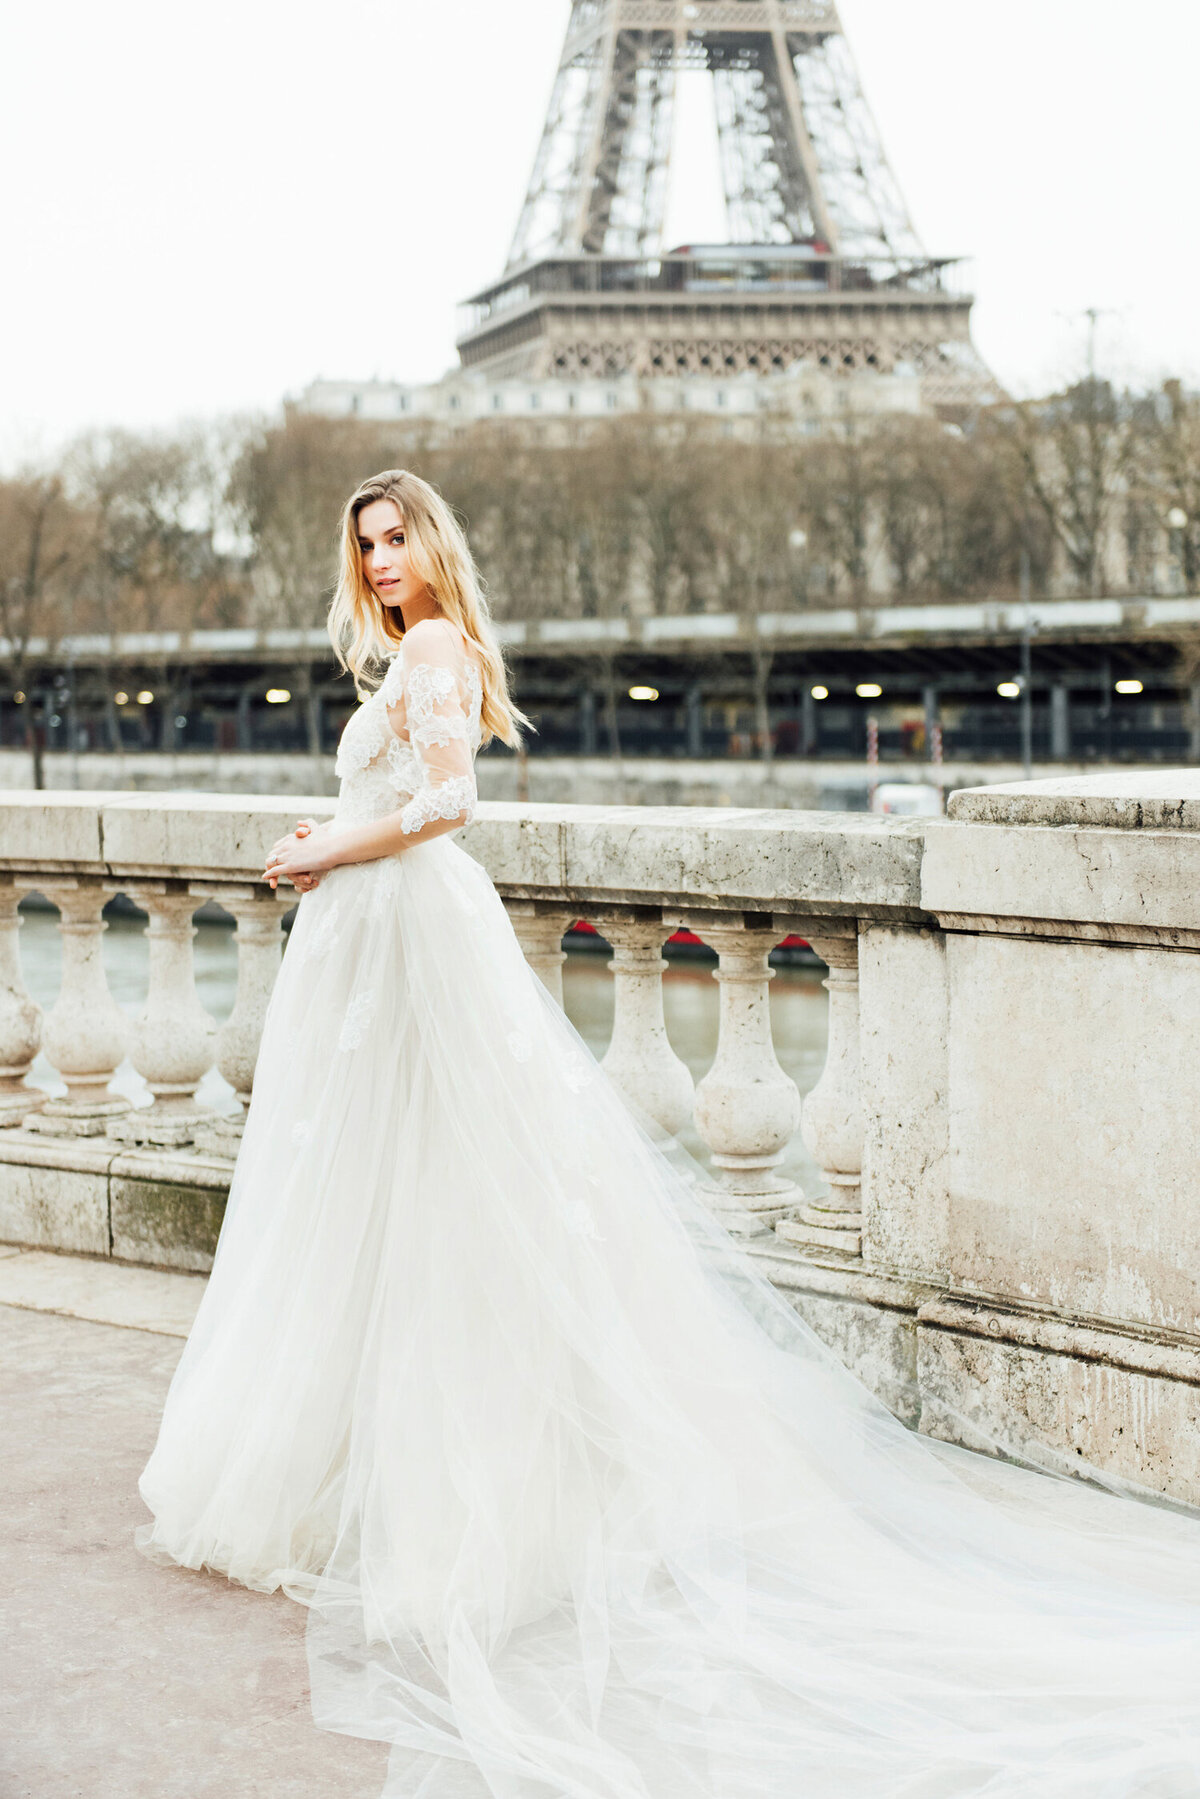 Katie Mitchell, Monique Lhuillier Bridal Paris France Wedding Trine Juel Hair and makeup 5